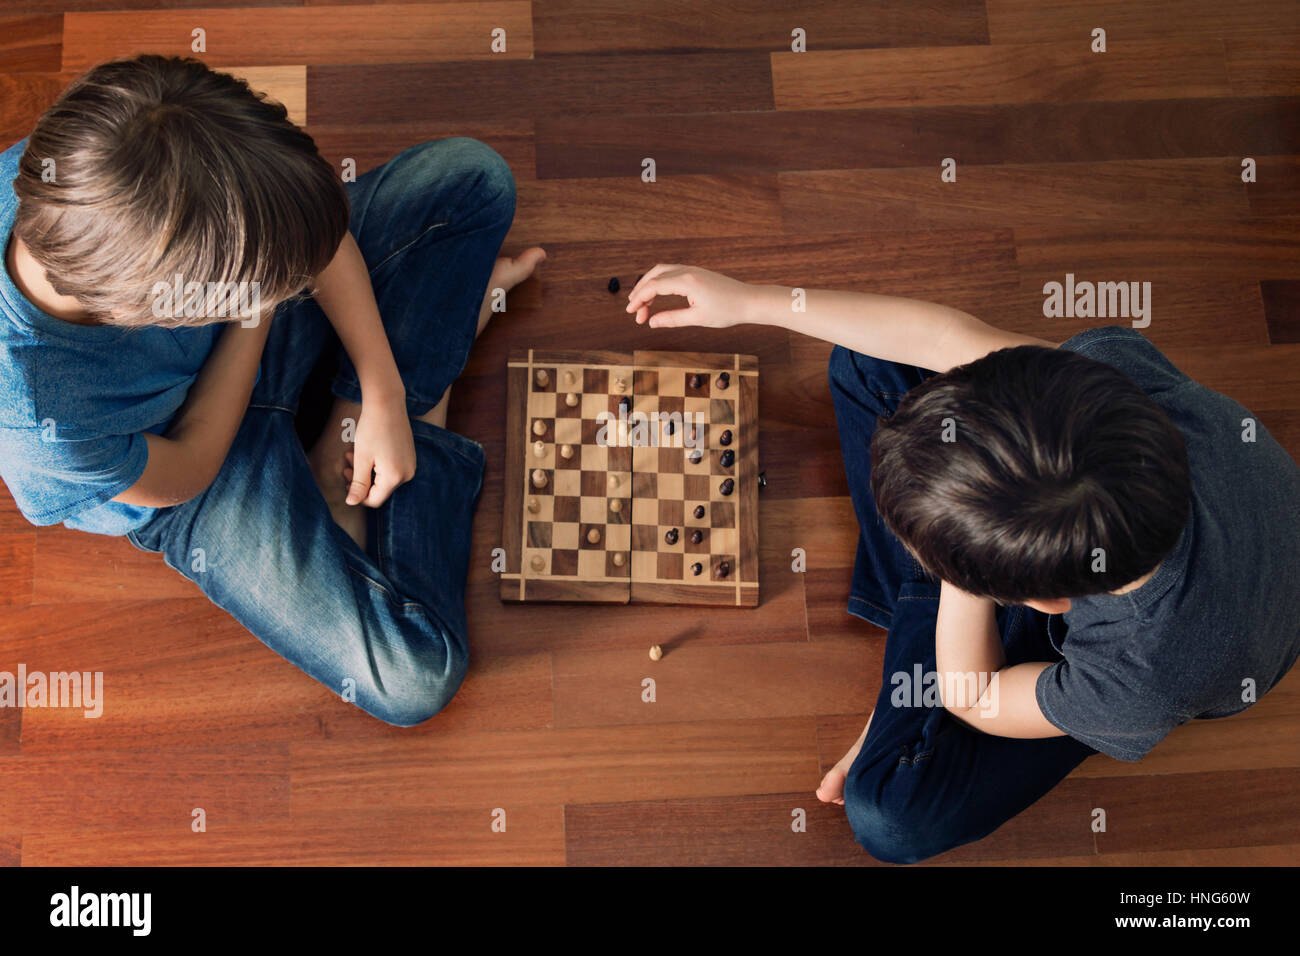 Kids playing chess sitting on wooden floor. Top view. Game, education, lifestyle, leisure concept. Toned image - Stock Image